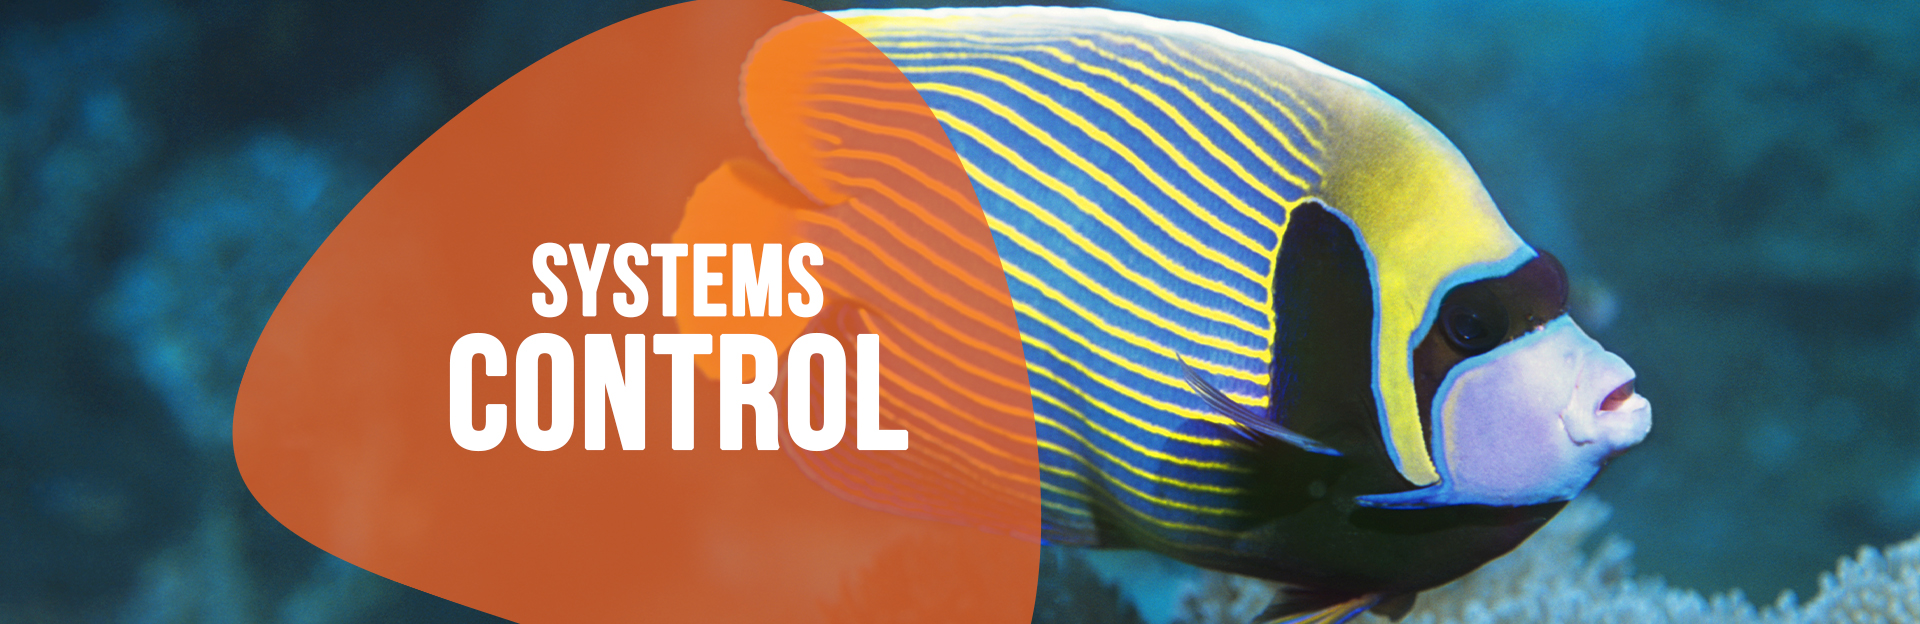 Header image for Systems Control page